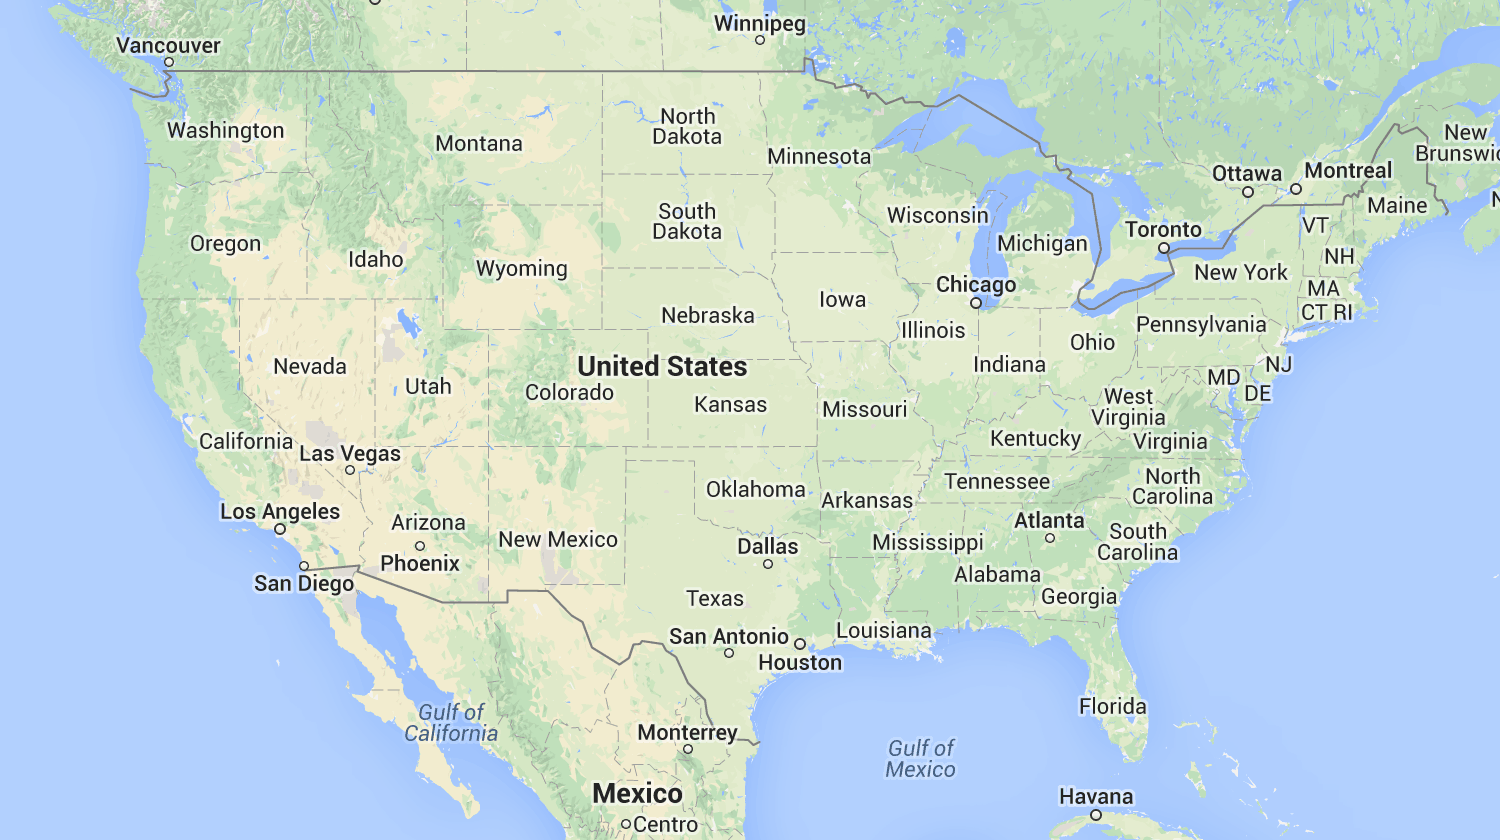 50 Mile Races Running in the USA (With images